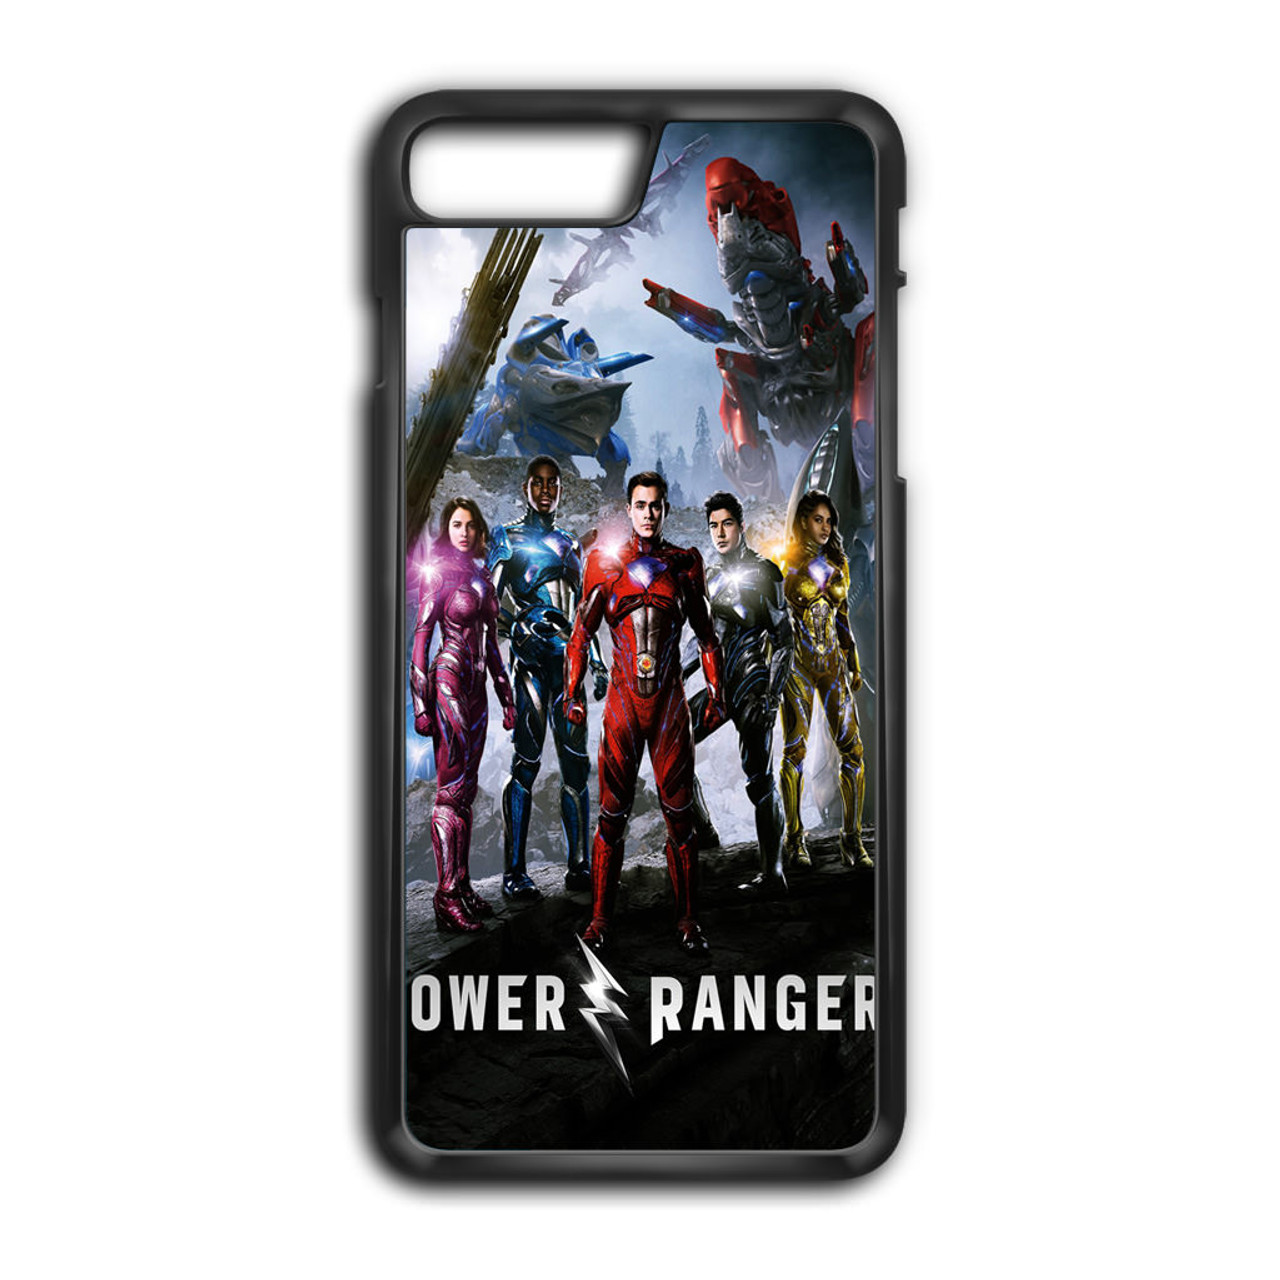 on sale 858a4 b63ad Power Rangers iPhone 7 Plus Case